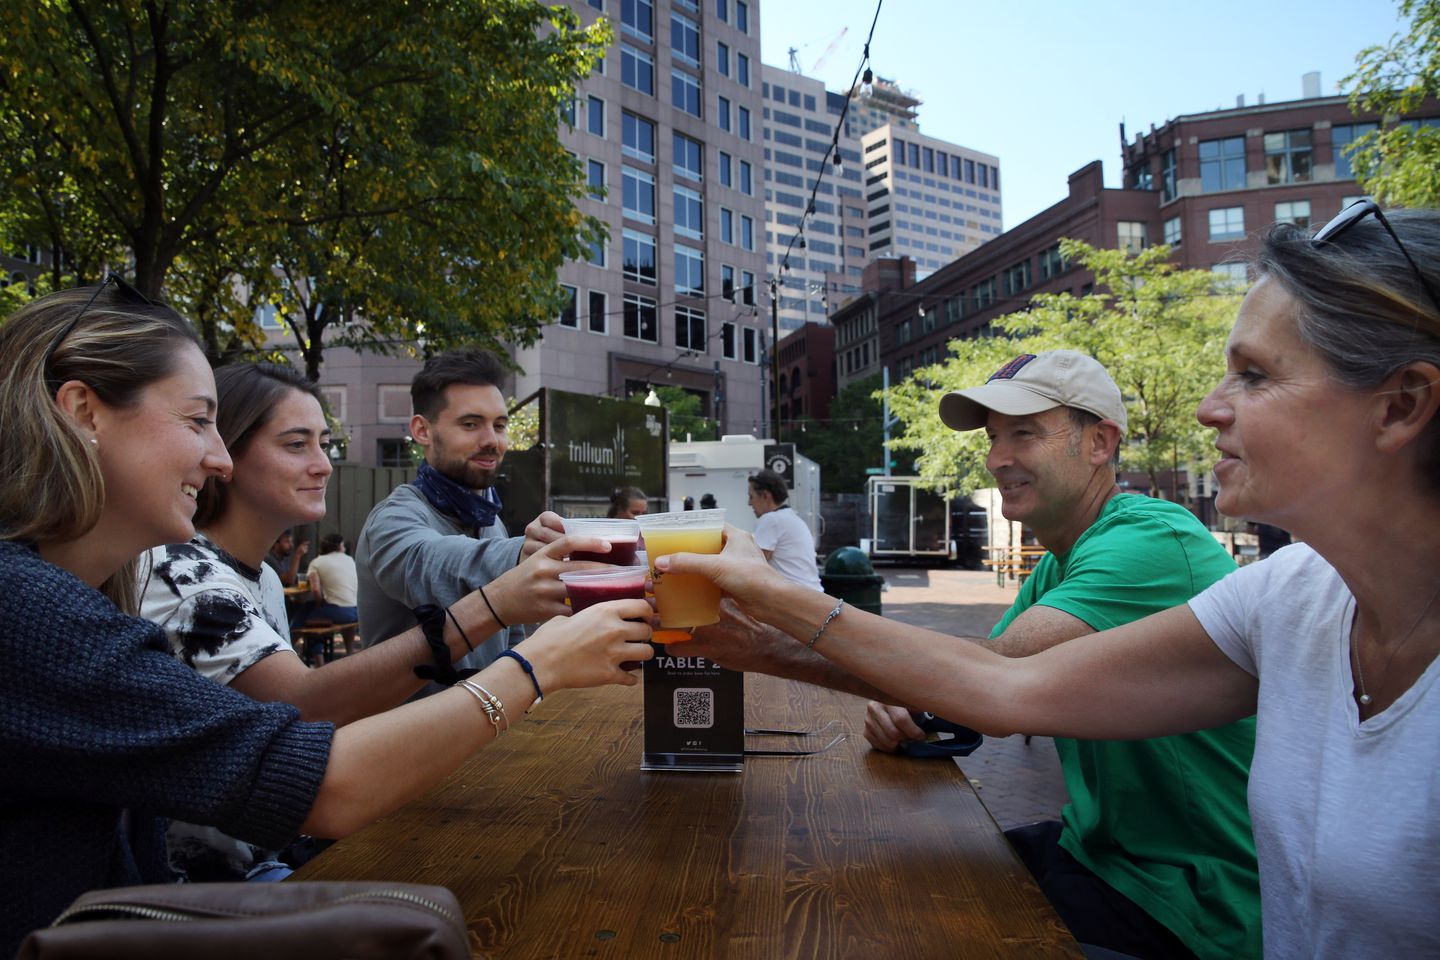 Sarah Richardson (left), her sister, Julia DePillo, and husband, Justin Richardson, had a beer with the sisters' parents, Stephen and Patricia DePillo at Trillium Garden.